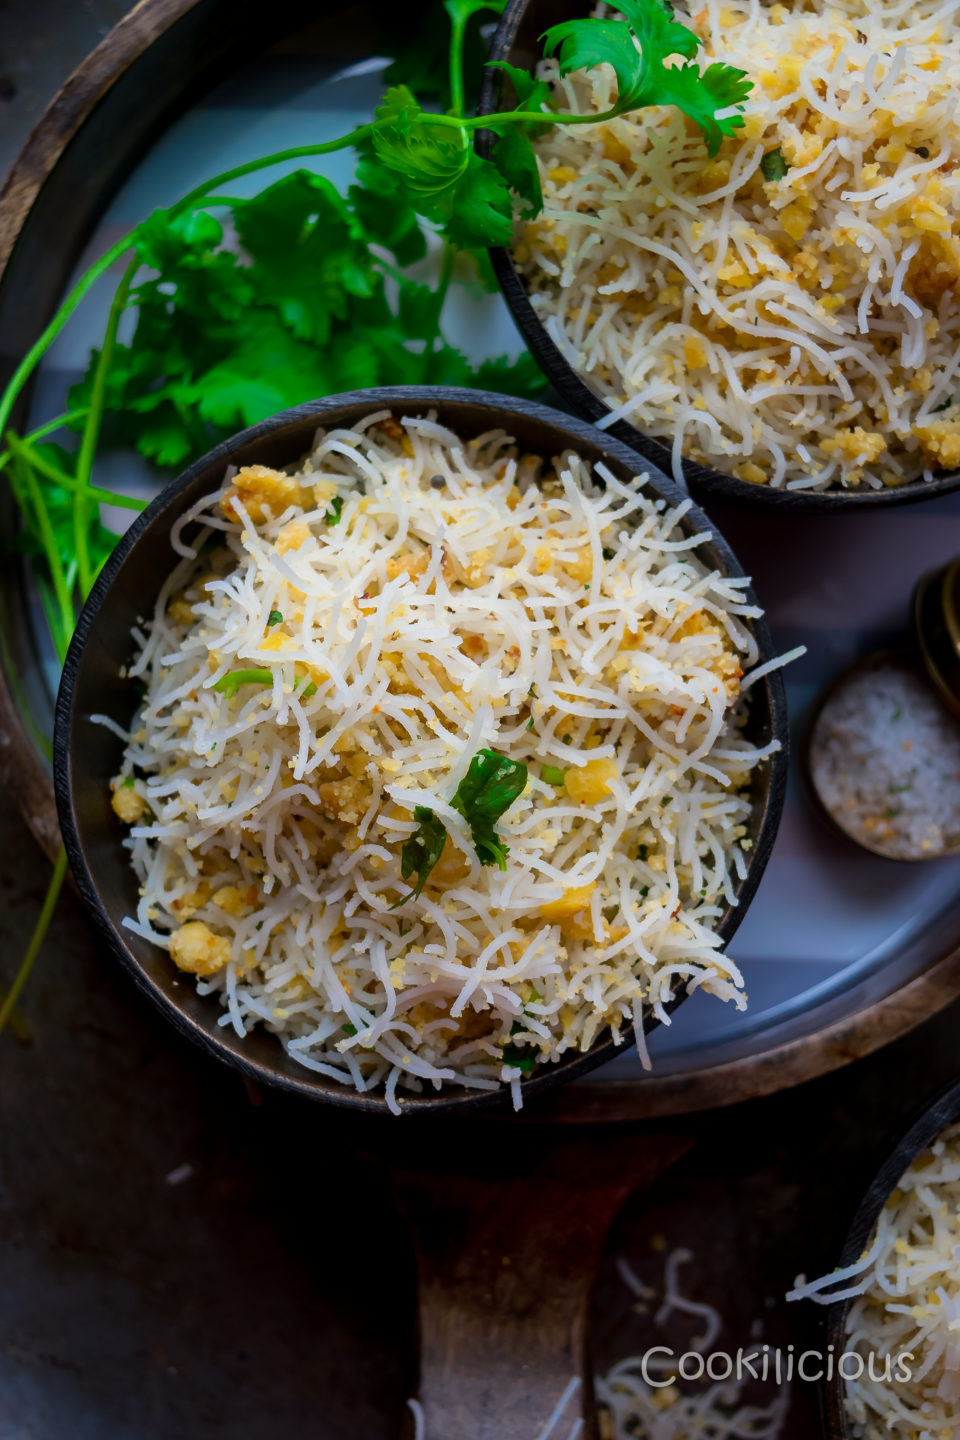 Lentil & Rice Noodles | Paruppu SevaiAppetizers & Snacks Power Breakfasts South Indian